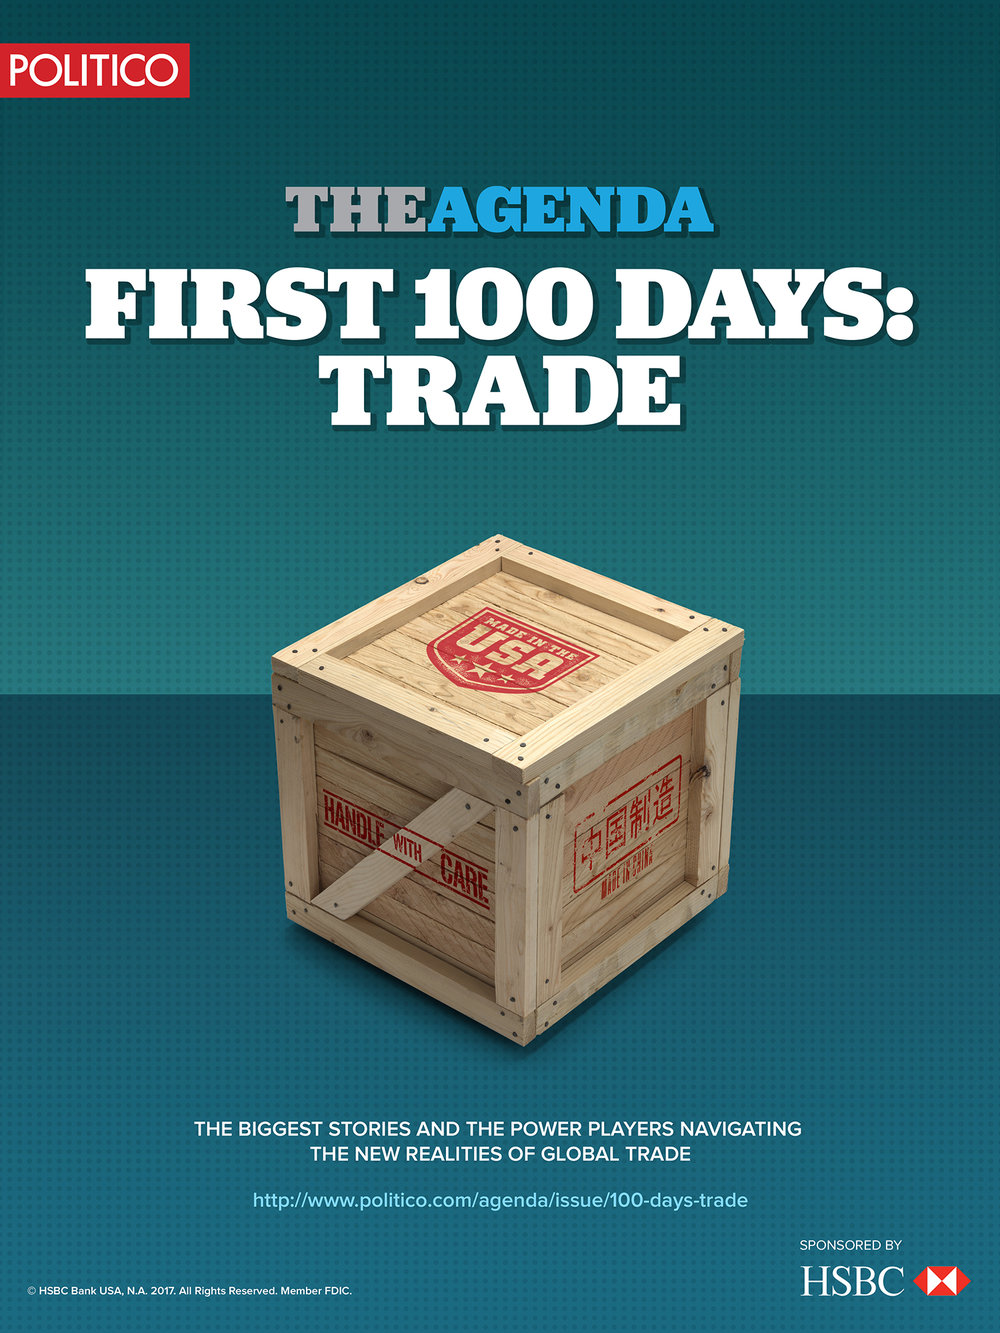 The Agenda - First 100 Days: Trade